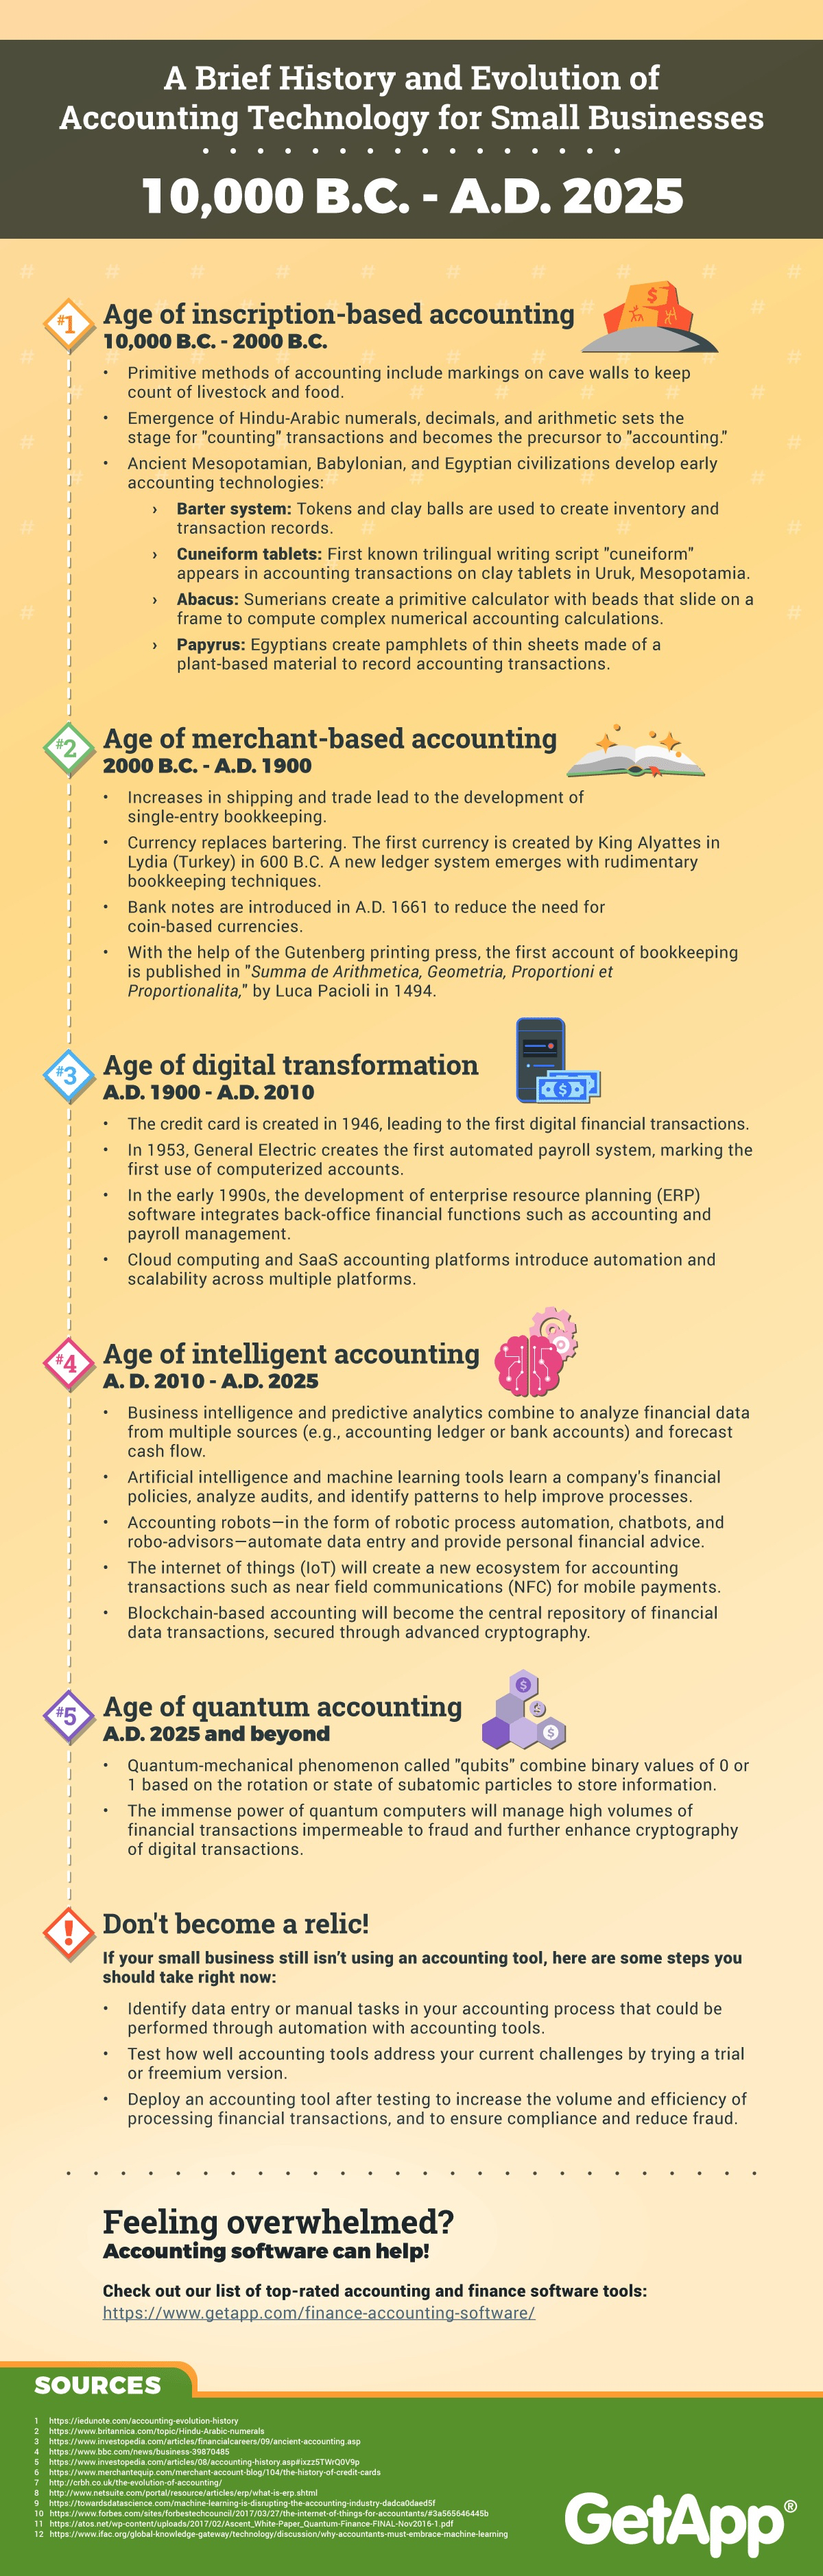 A-brief-history-and-evolution-of-accounting-technology-for-small-businesses